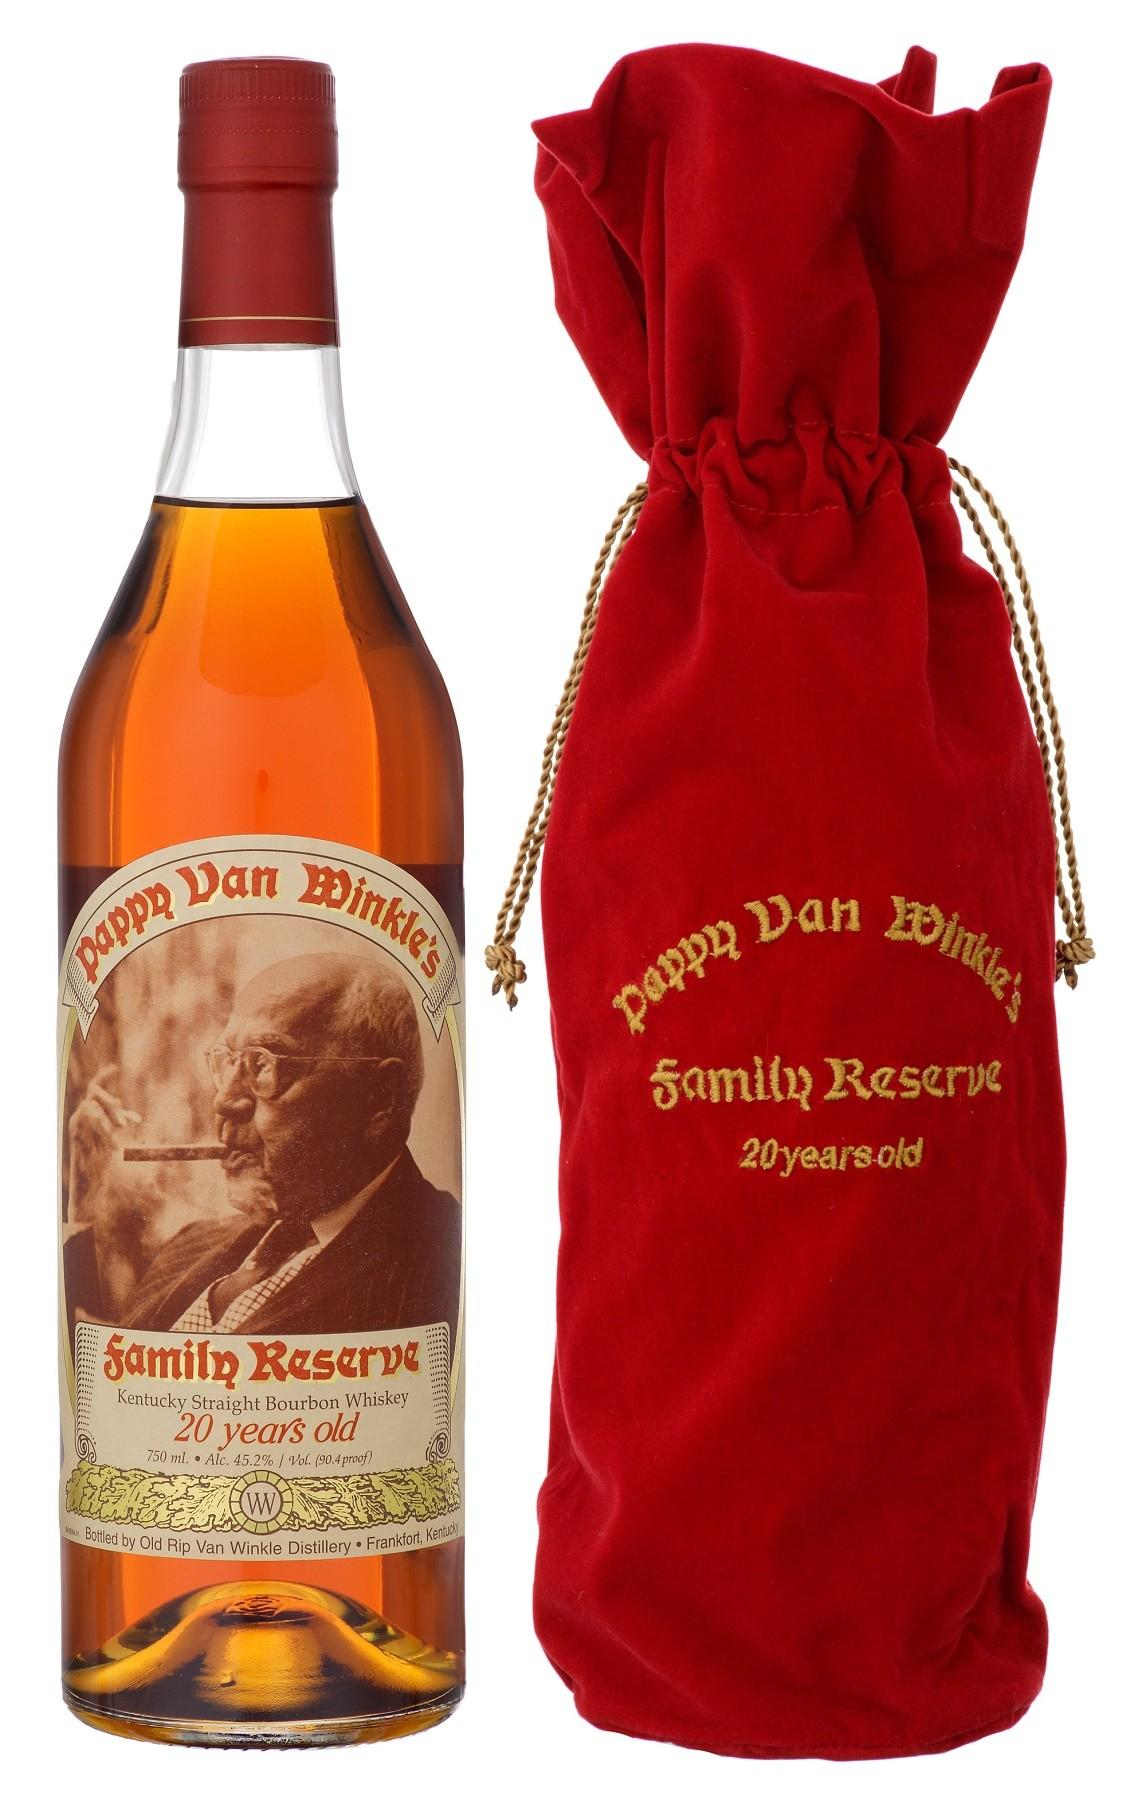 Old Rip Van Winkle 'Pappy Van Winkle's Family Reserve' 20-Year-Old Kentucky Straight Bourbon